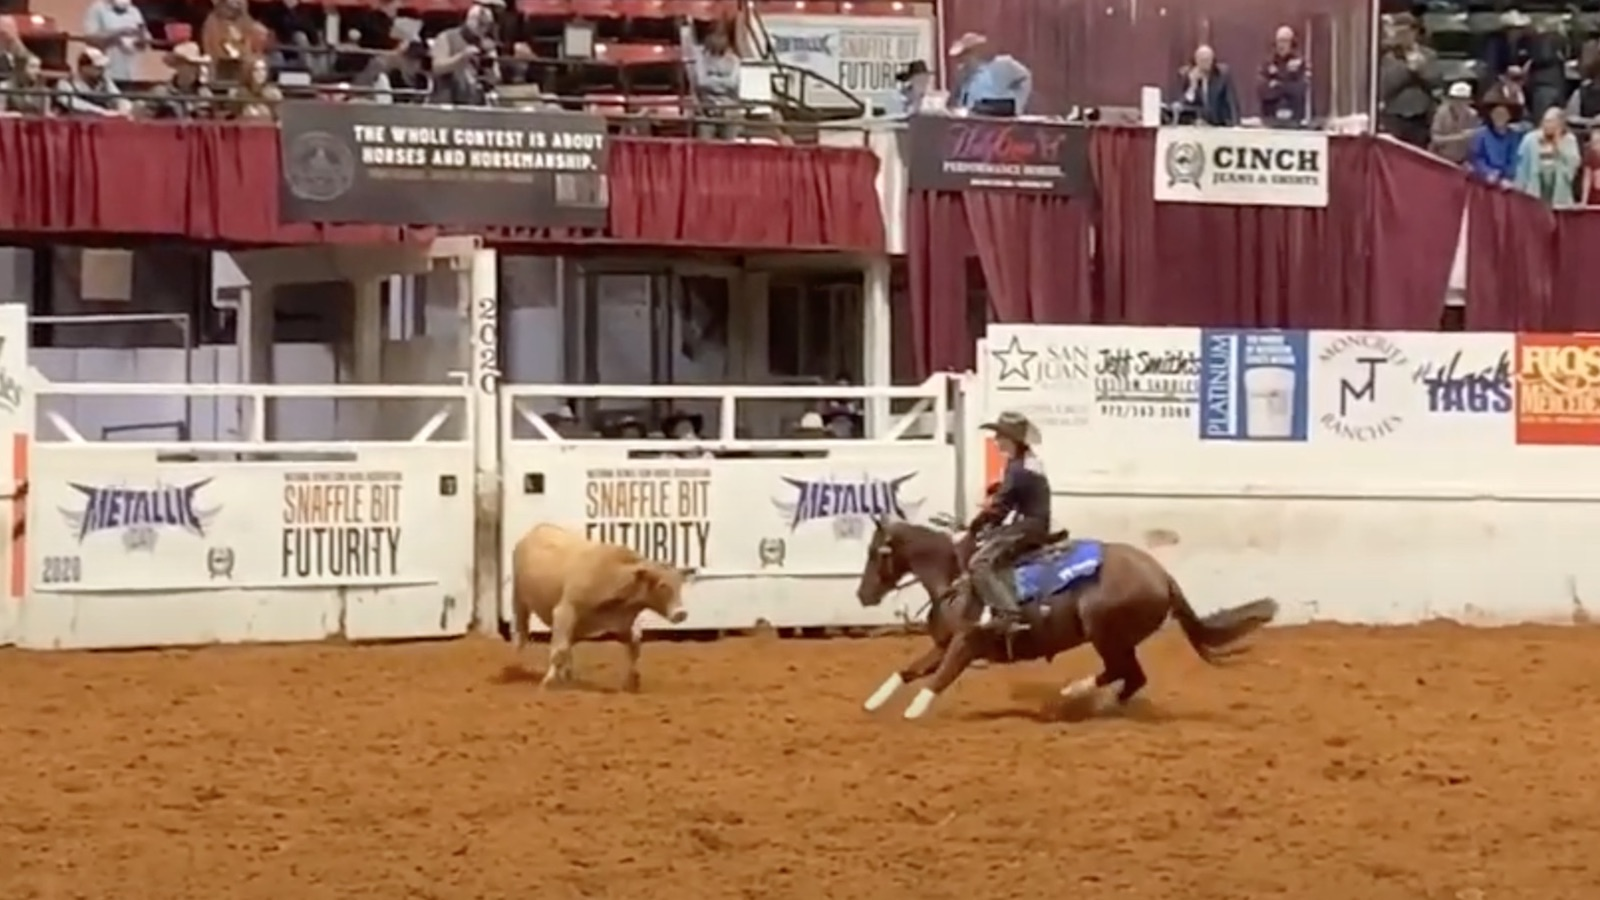 Sarah Dawson competing in the cow work at the Snaffle Bit Futurity